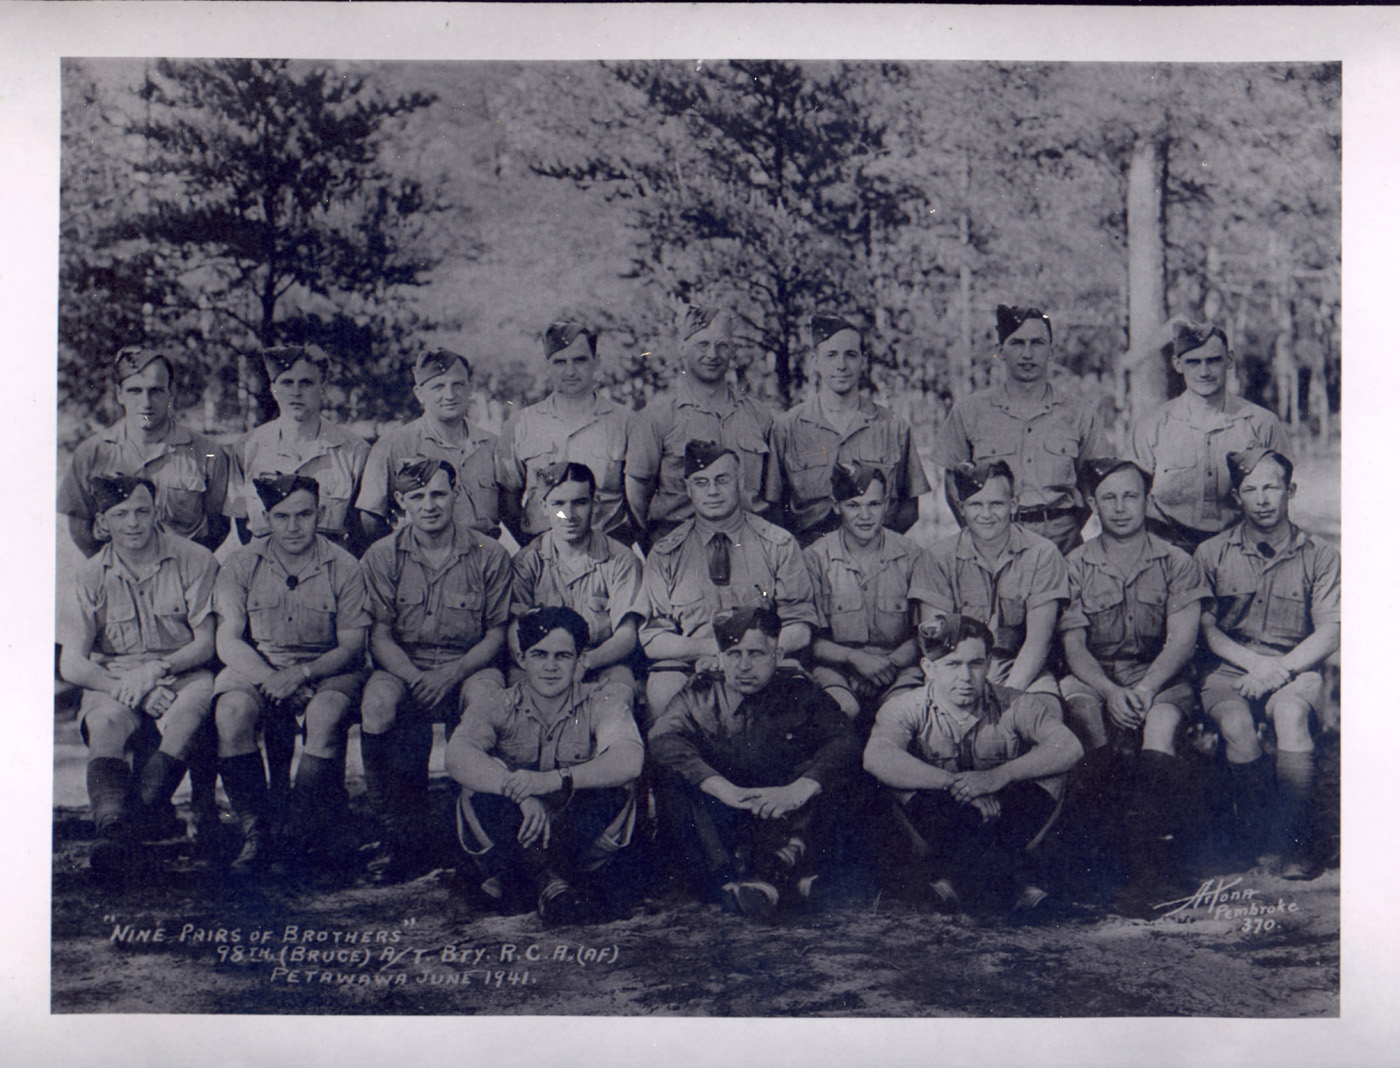 98th Anti-Tank Battery - 9 pairs of brothers, June 1943 Petawawa